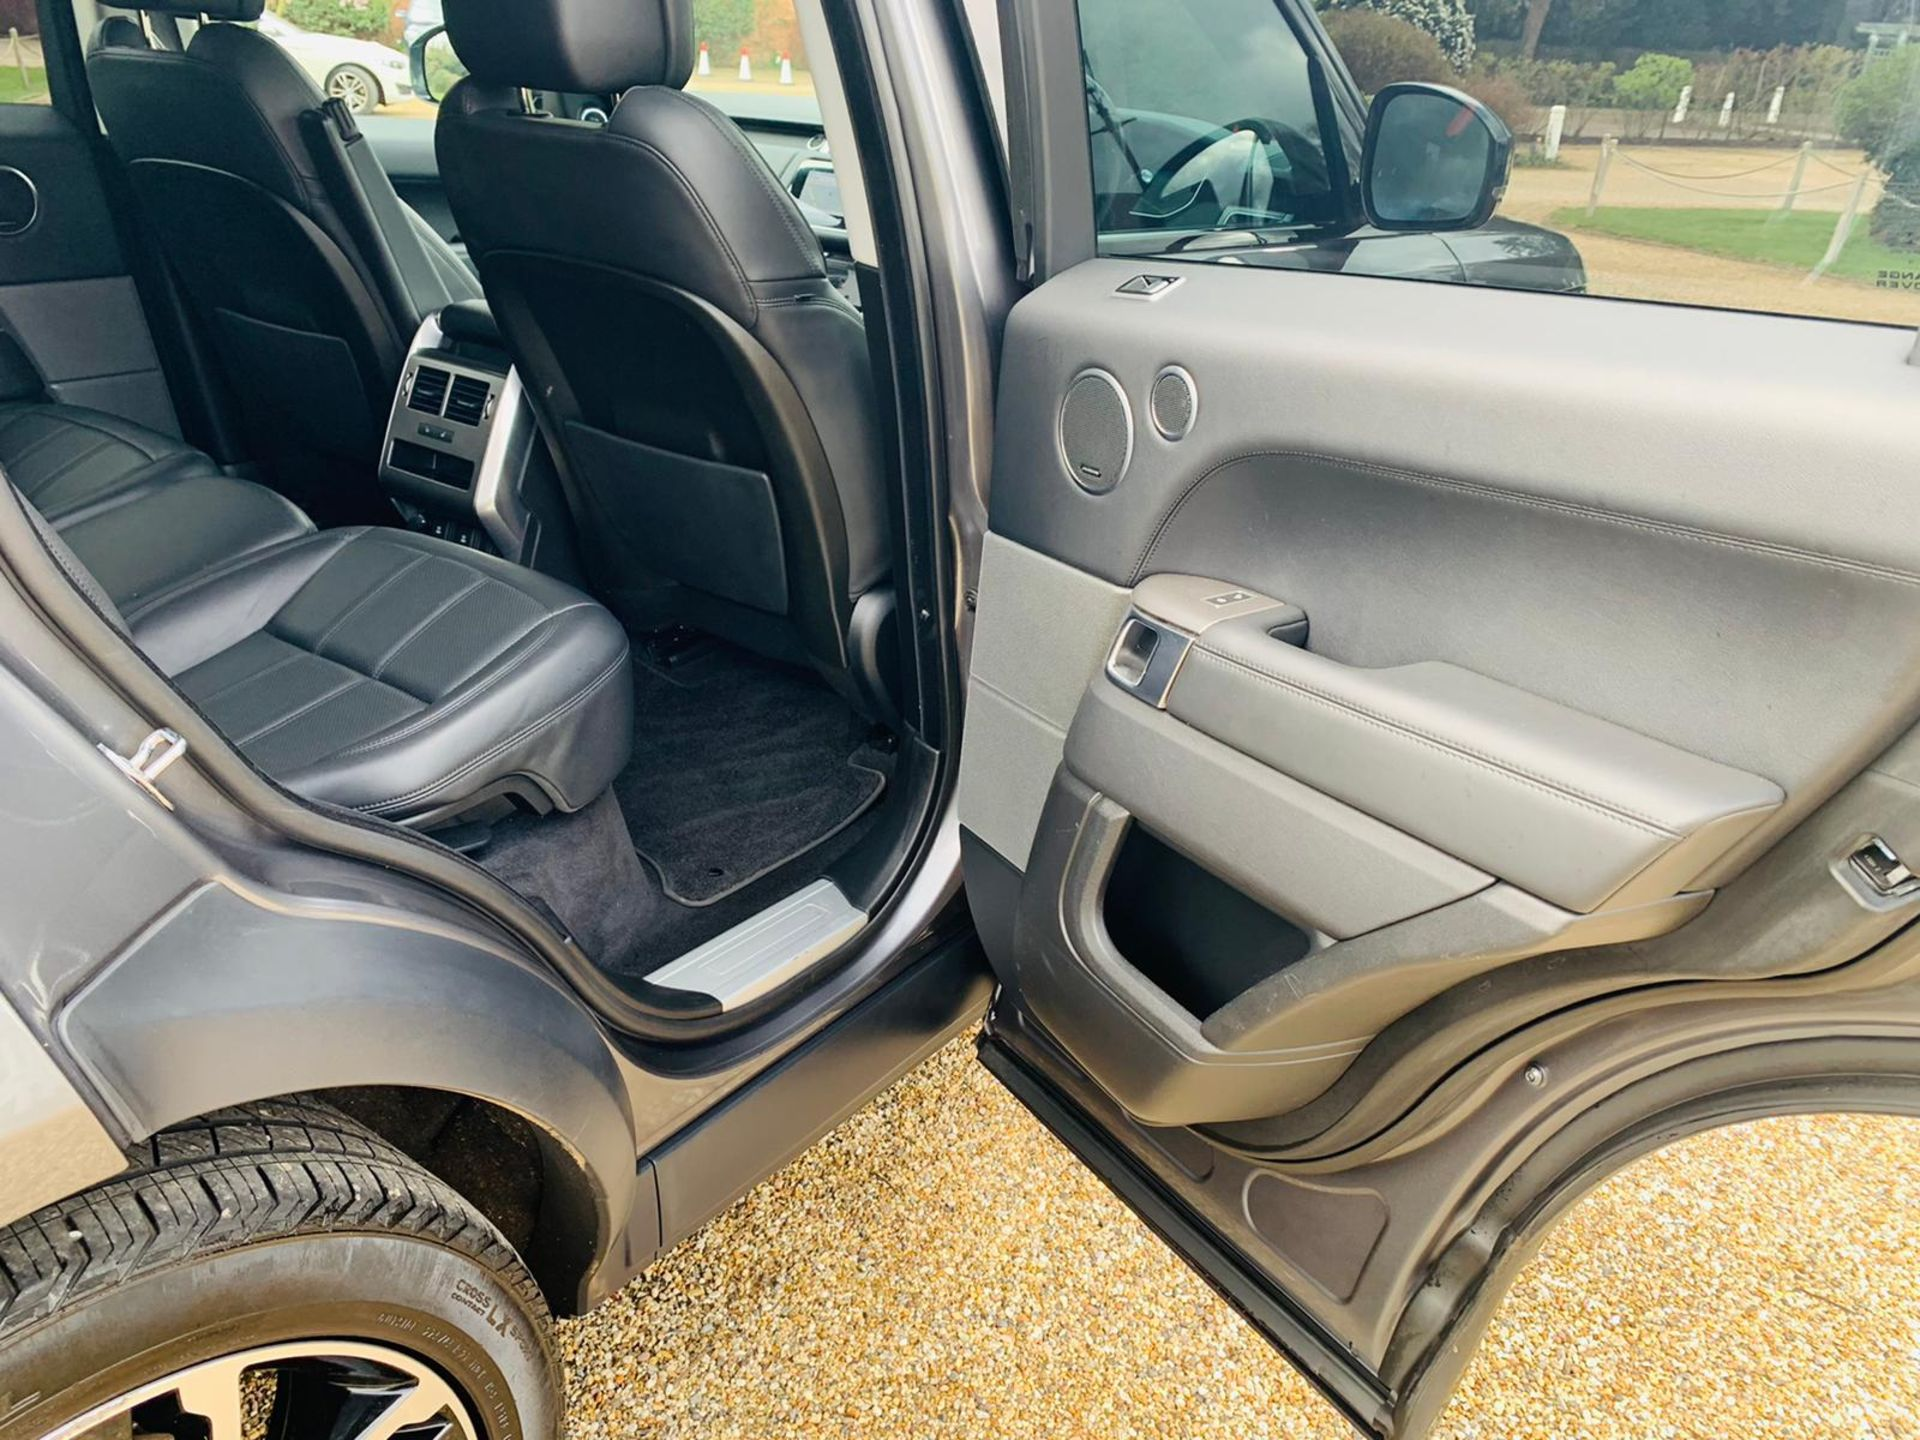 (RESERVE MET) Range Rover Sport 3.0 SDV6 HSE Auto - 2019 - 1 Keeper From New - Virtual Cockpit - - Image 28 of 42